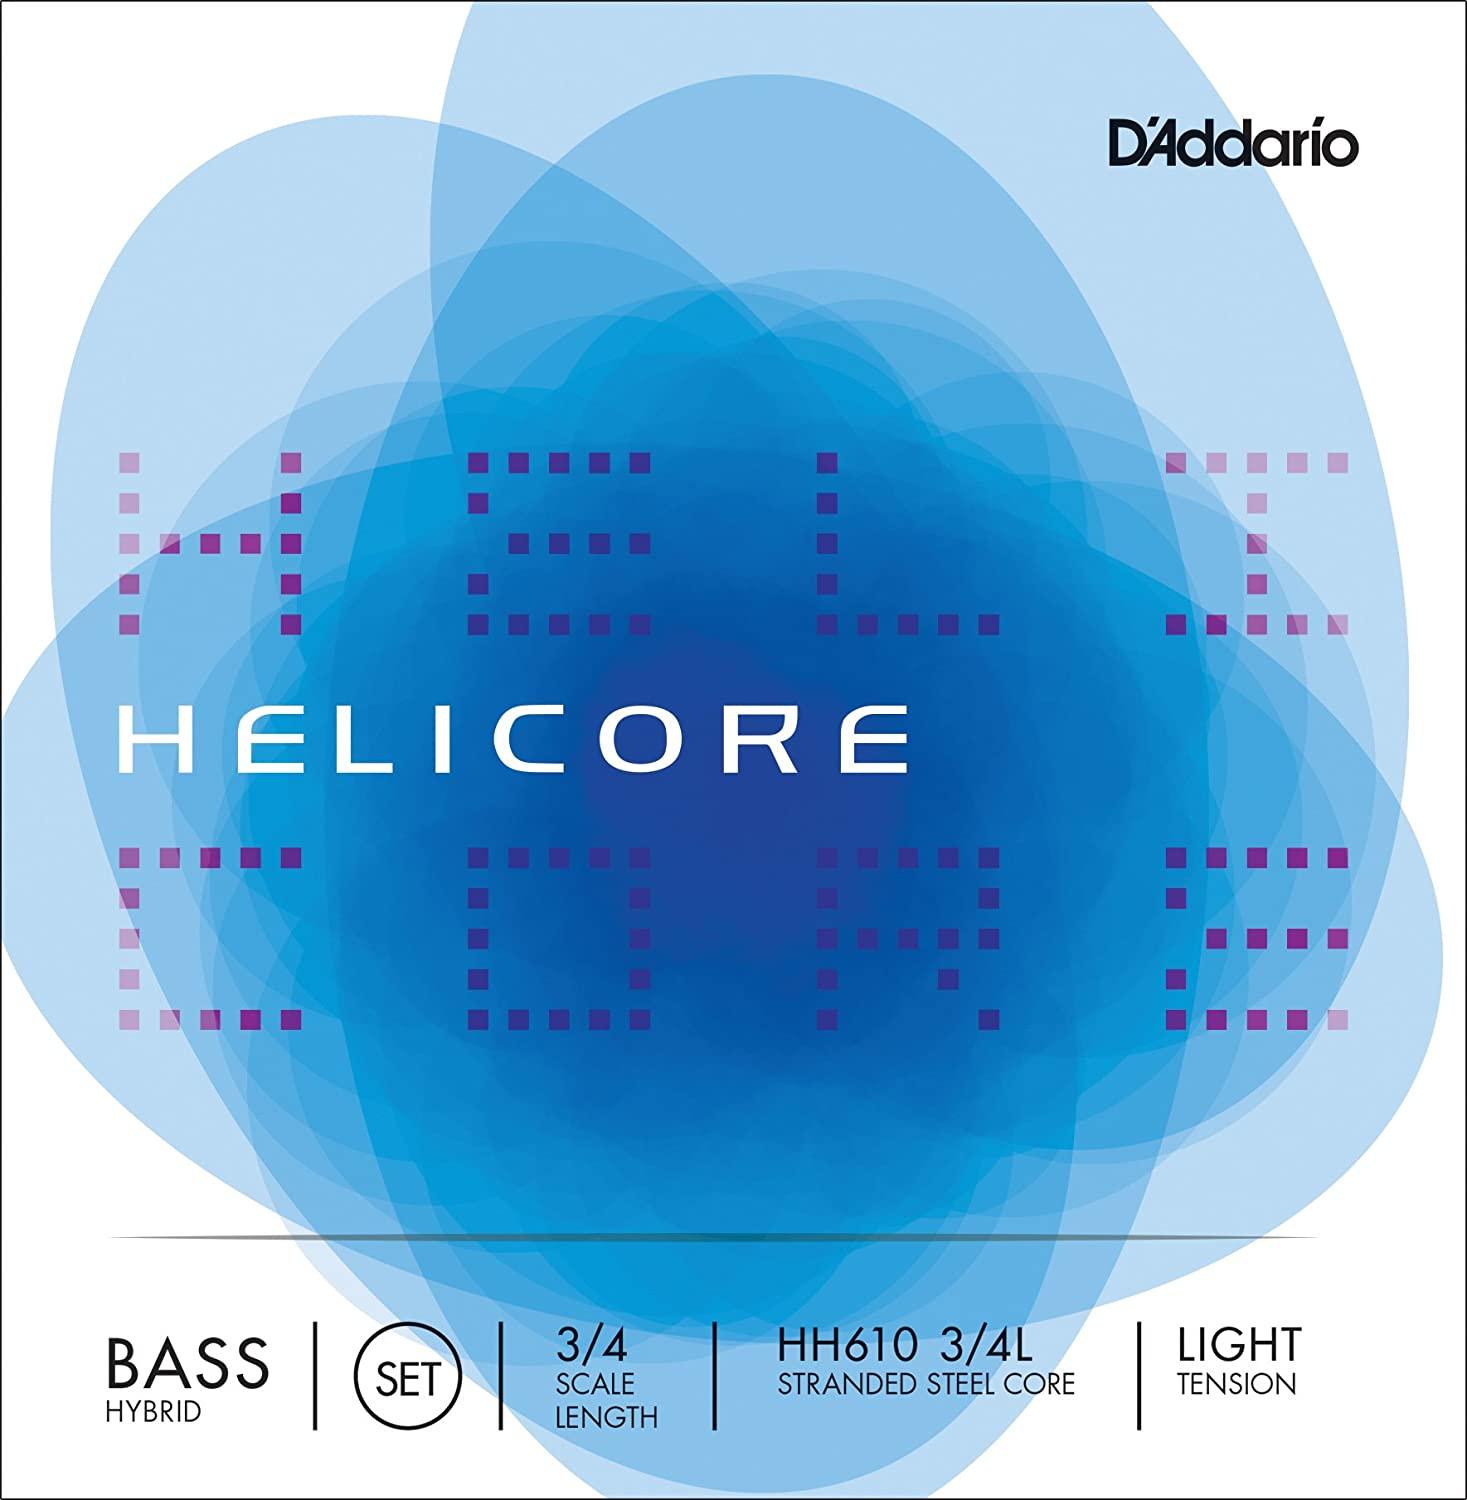 D'Addario Helicore Hybrid Bass String Set, 3/4 Scale, Medium Tension D'Addario &Co. Inc HH610 3/4M